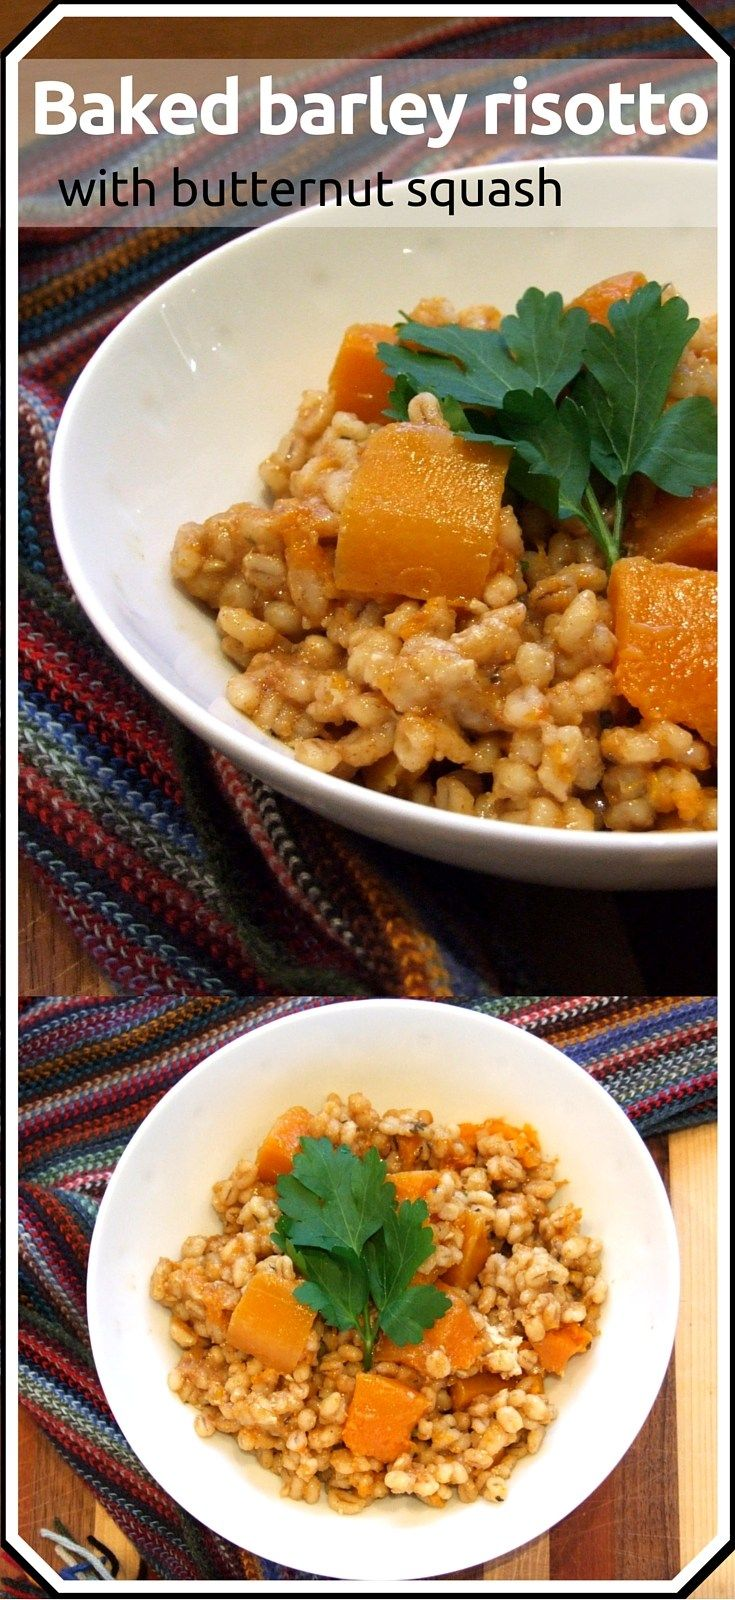 Easy to assemble, this barley risotto bakes to comforting perfection. An ideal warming family meal on a cold winter's day. Vegan & parve.